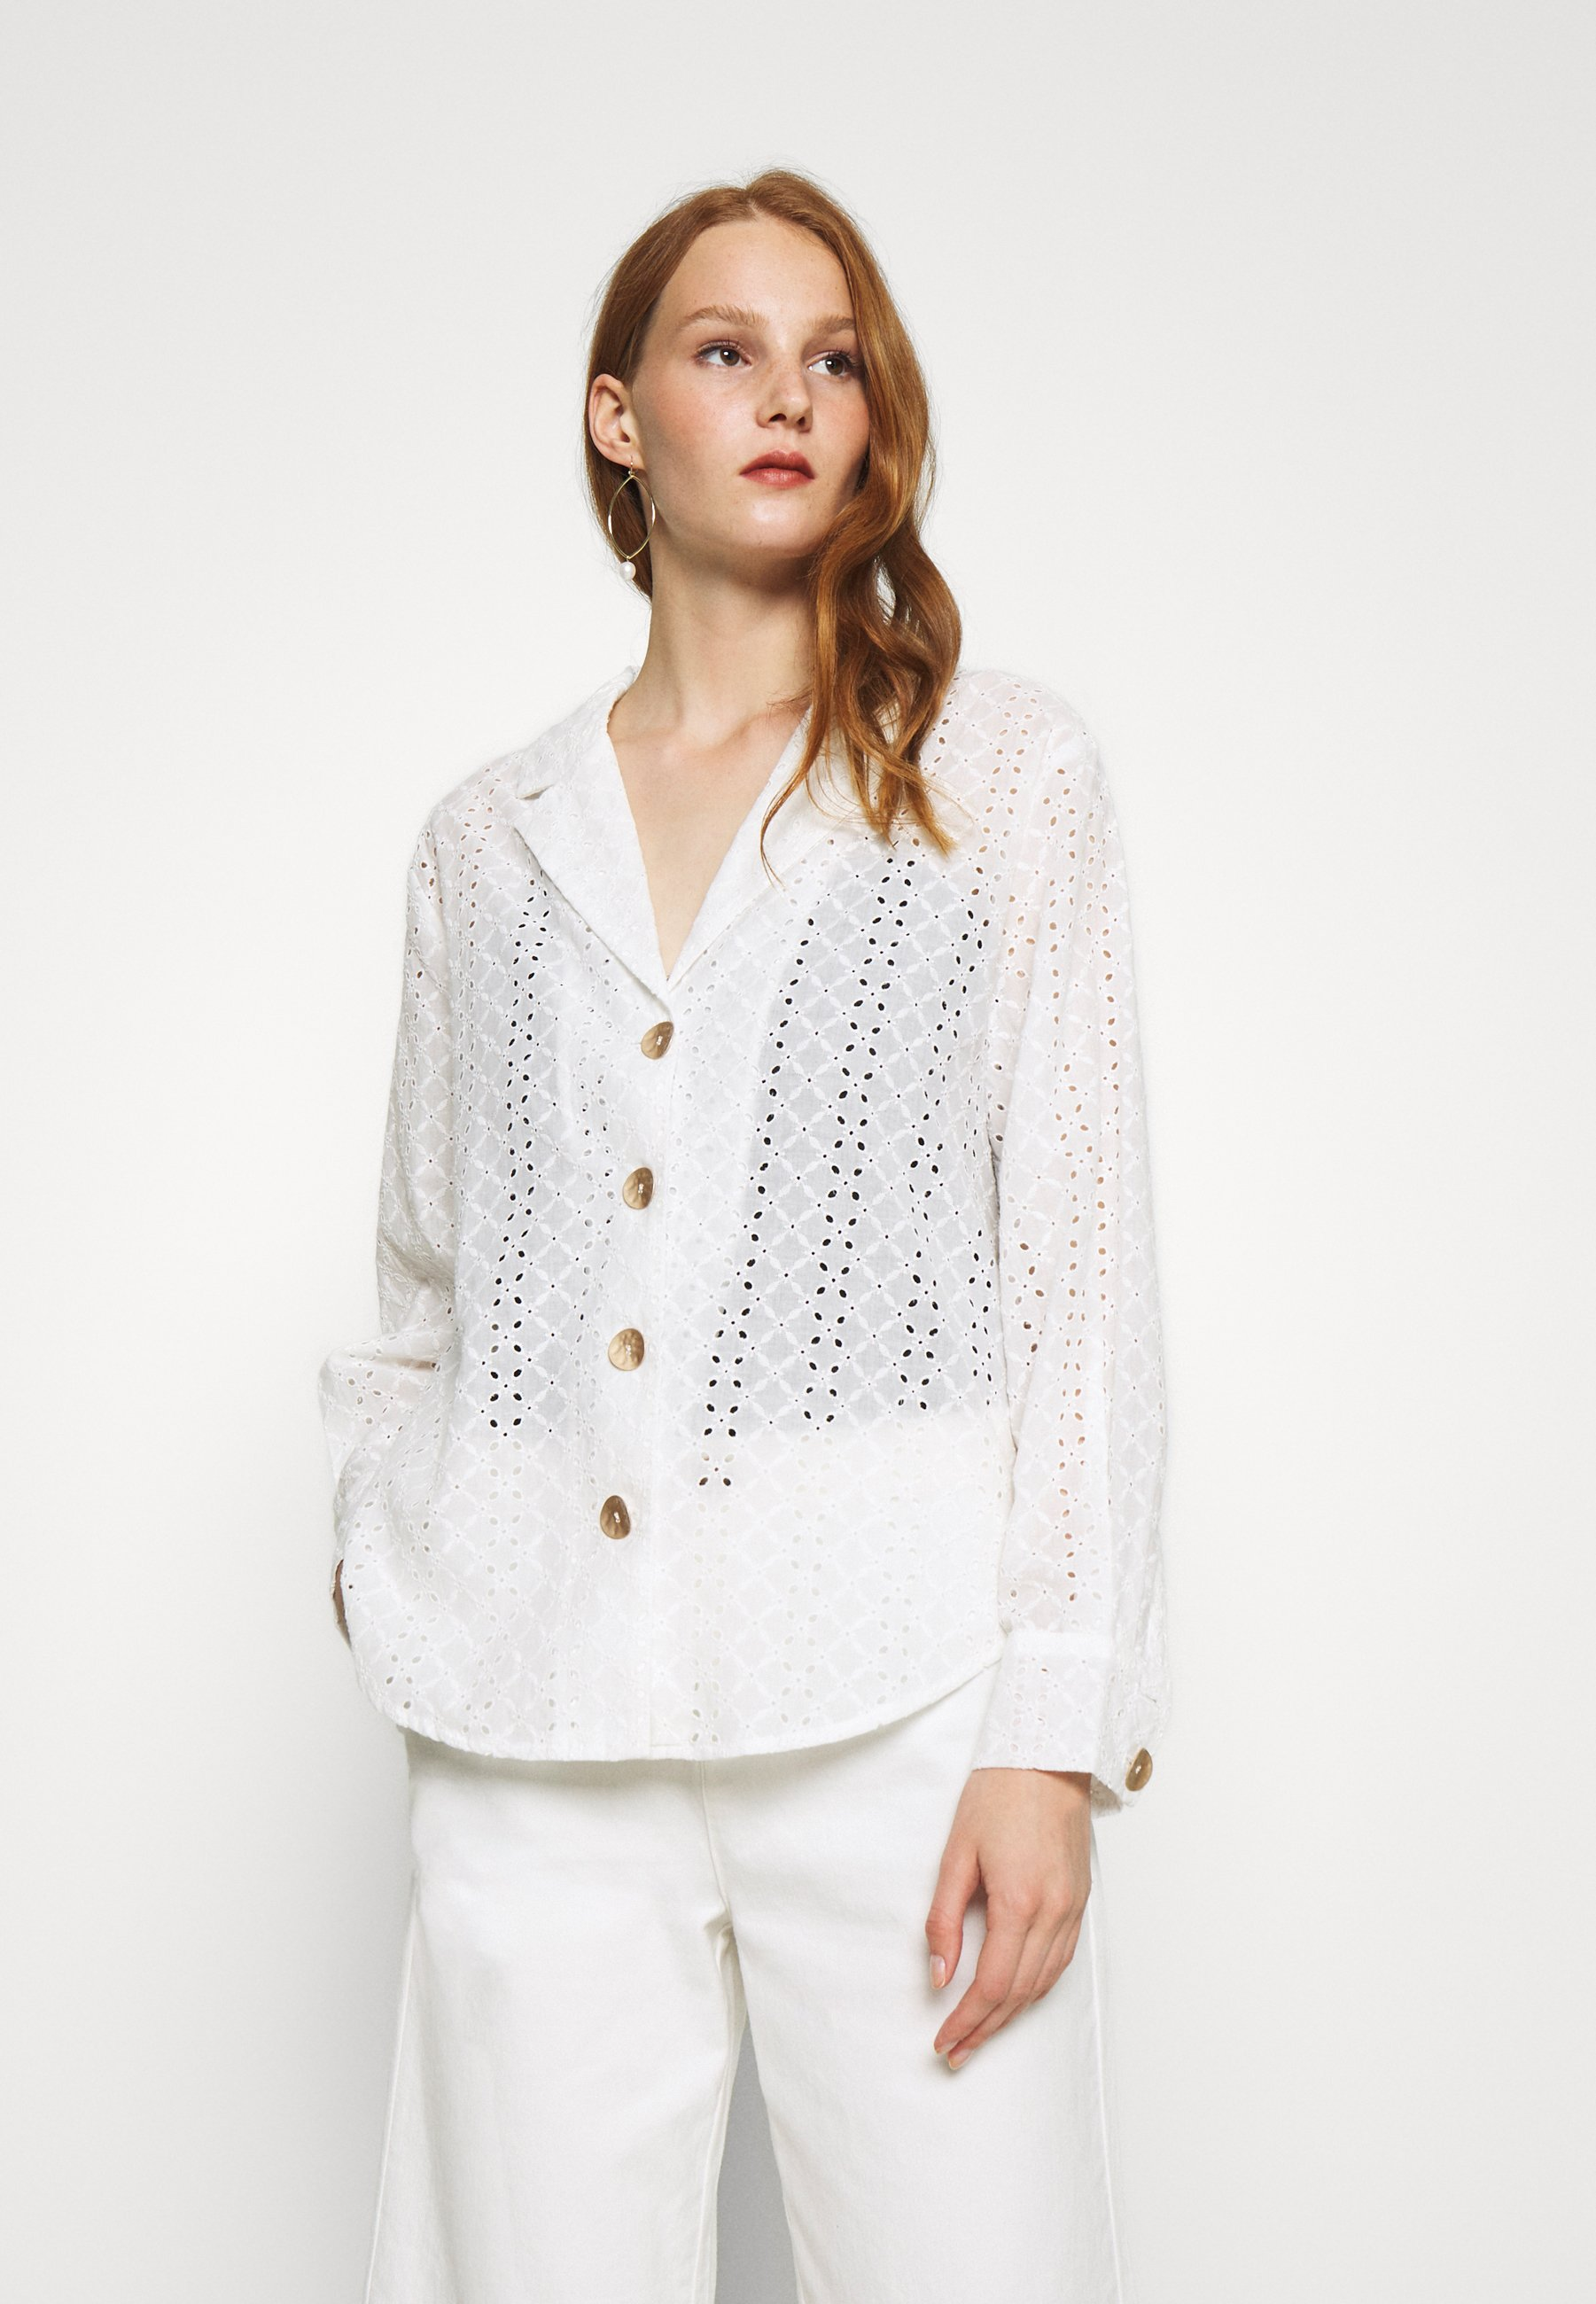 Limit Discount Women's Clothing We are Kindred BRONTE LOOSE Button-down blouse white Ynno2w3SA